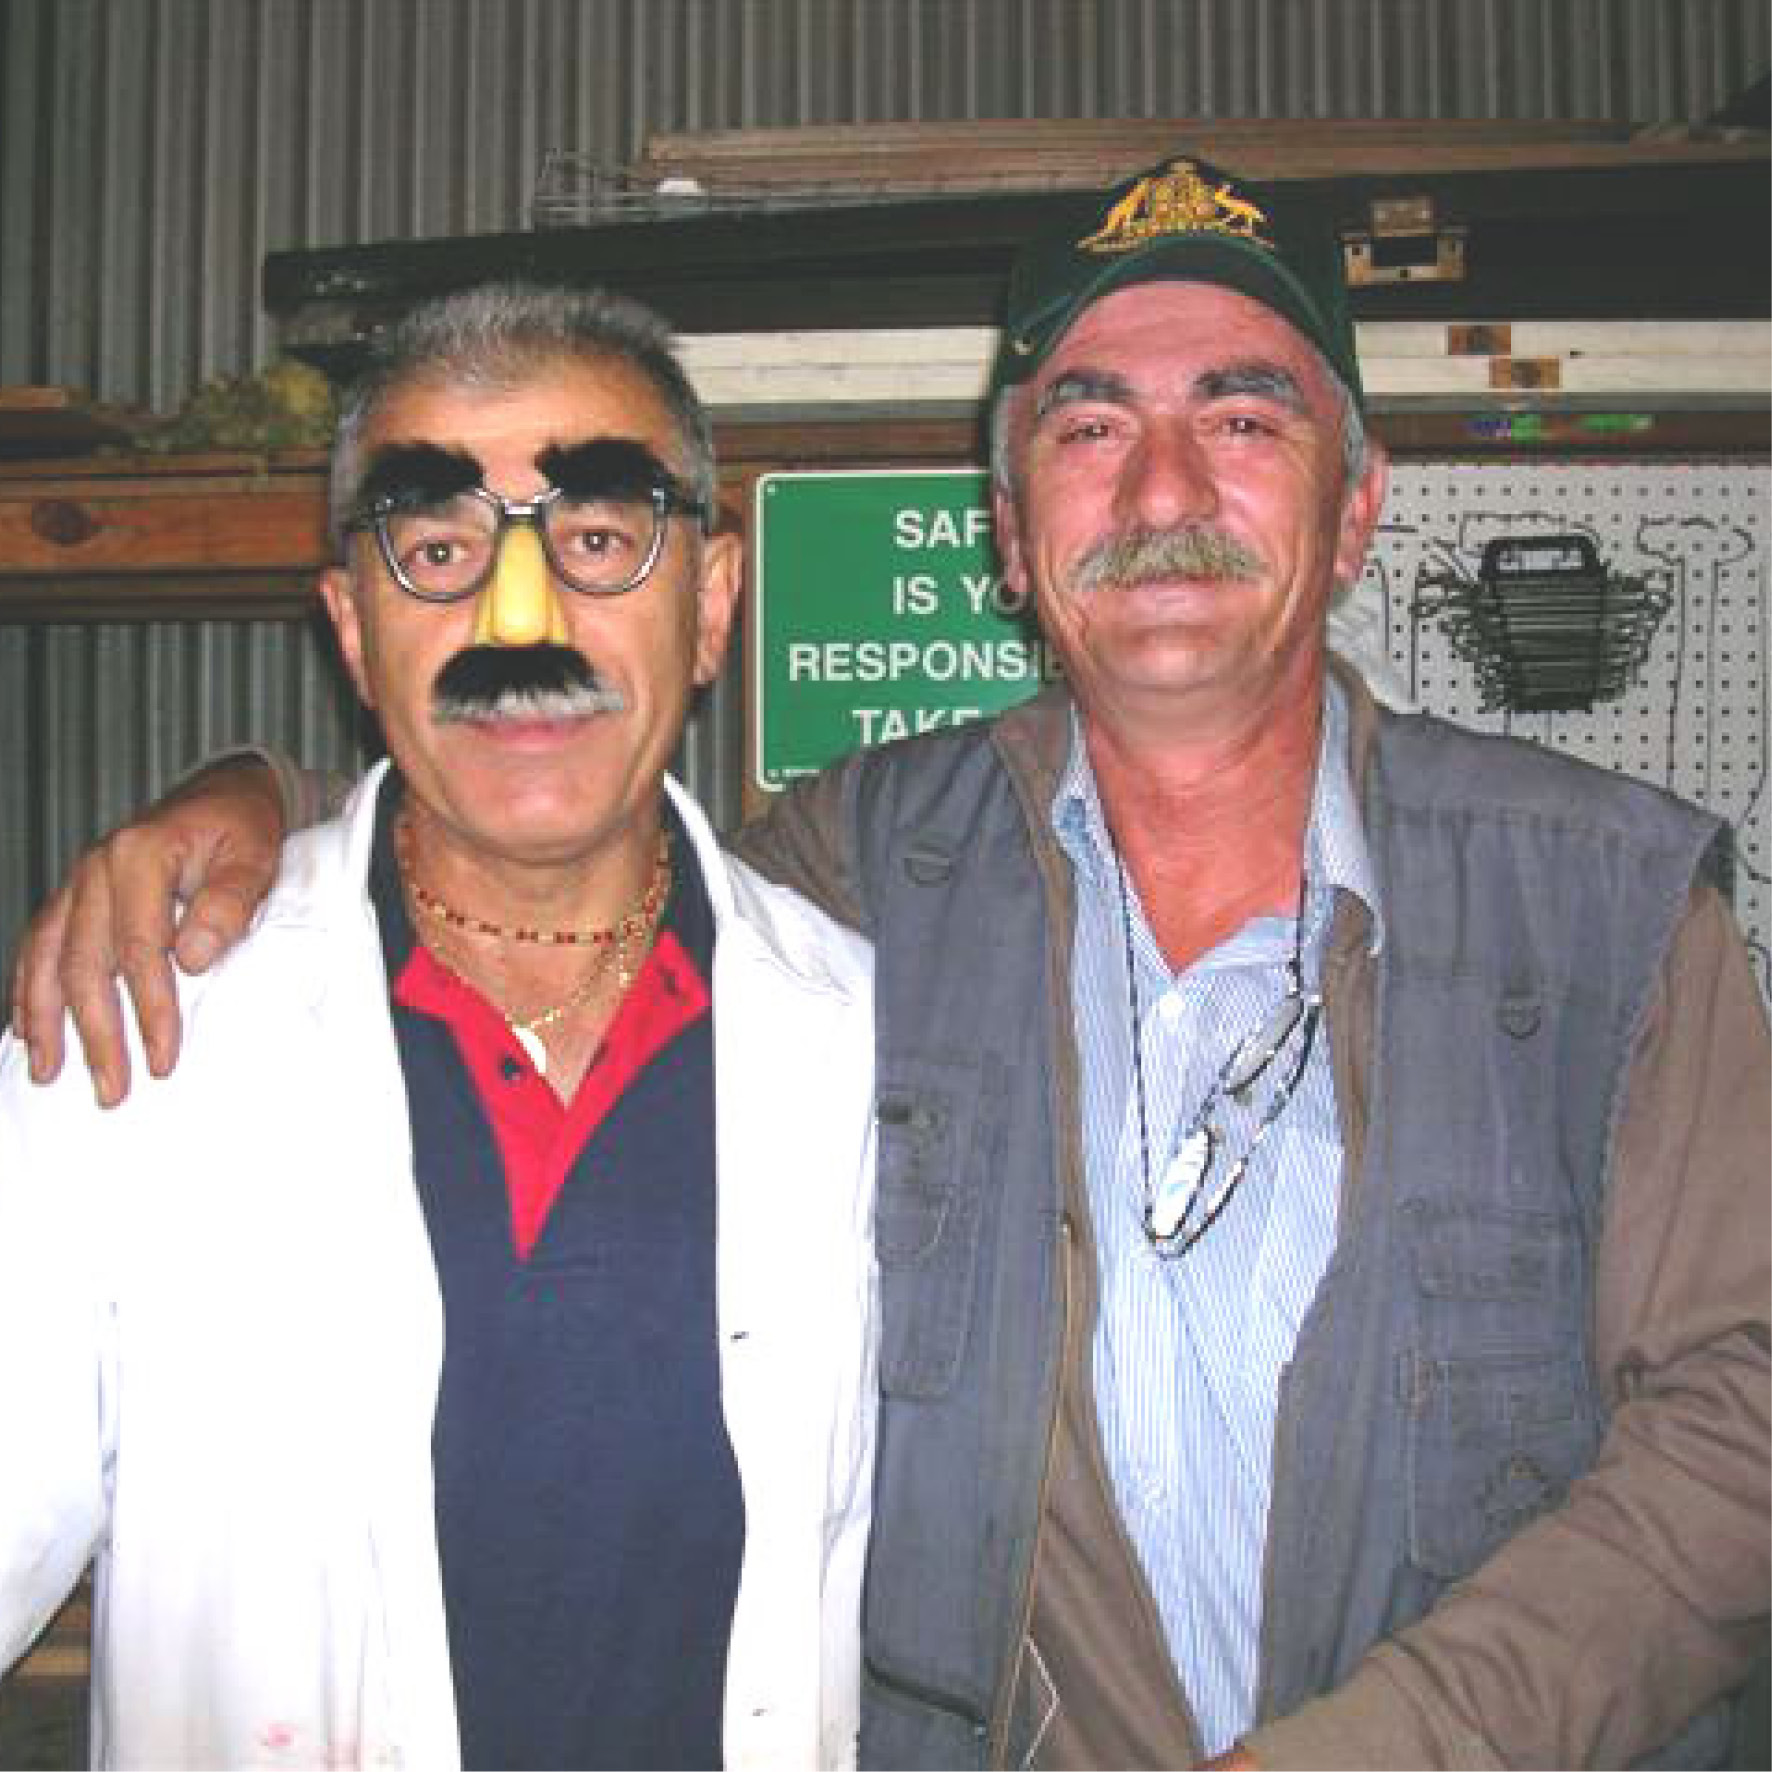 Close up of two older men, posing together. Both with a smiles and one wearing novelty glasses with big eye brows and nose.